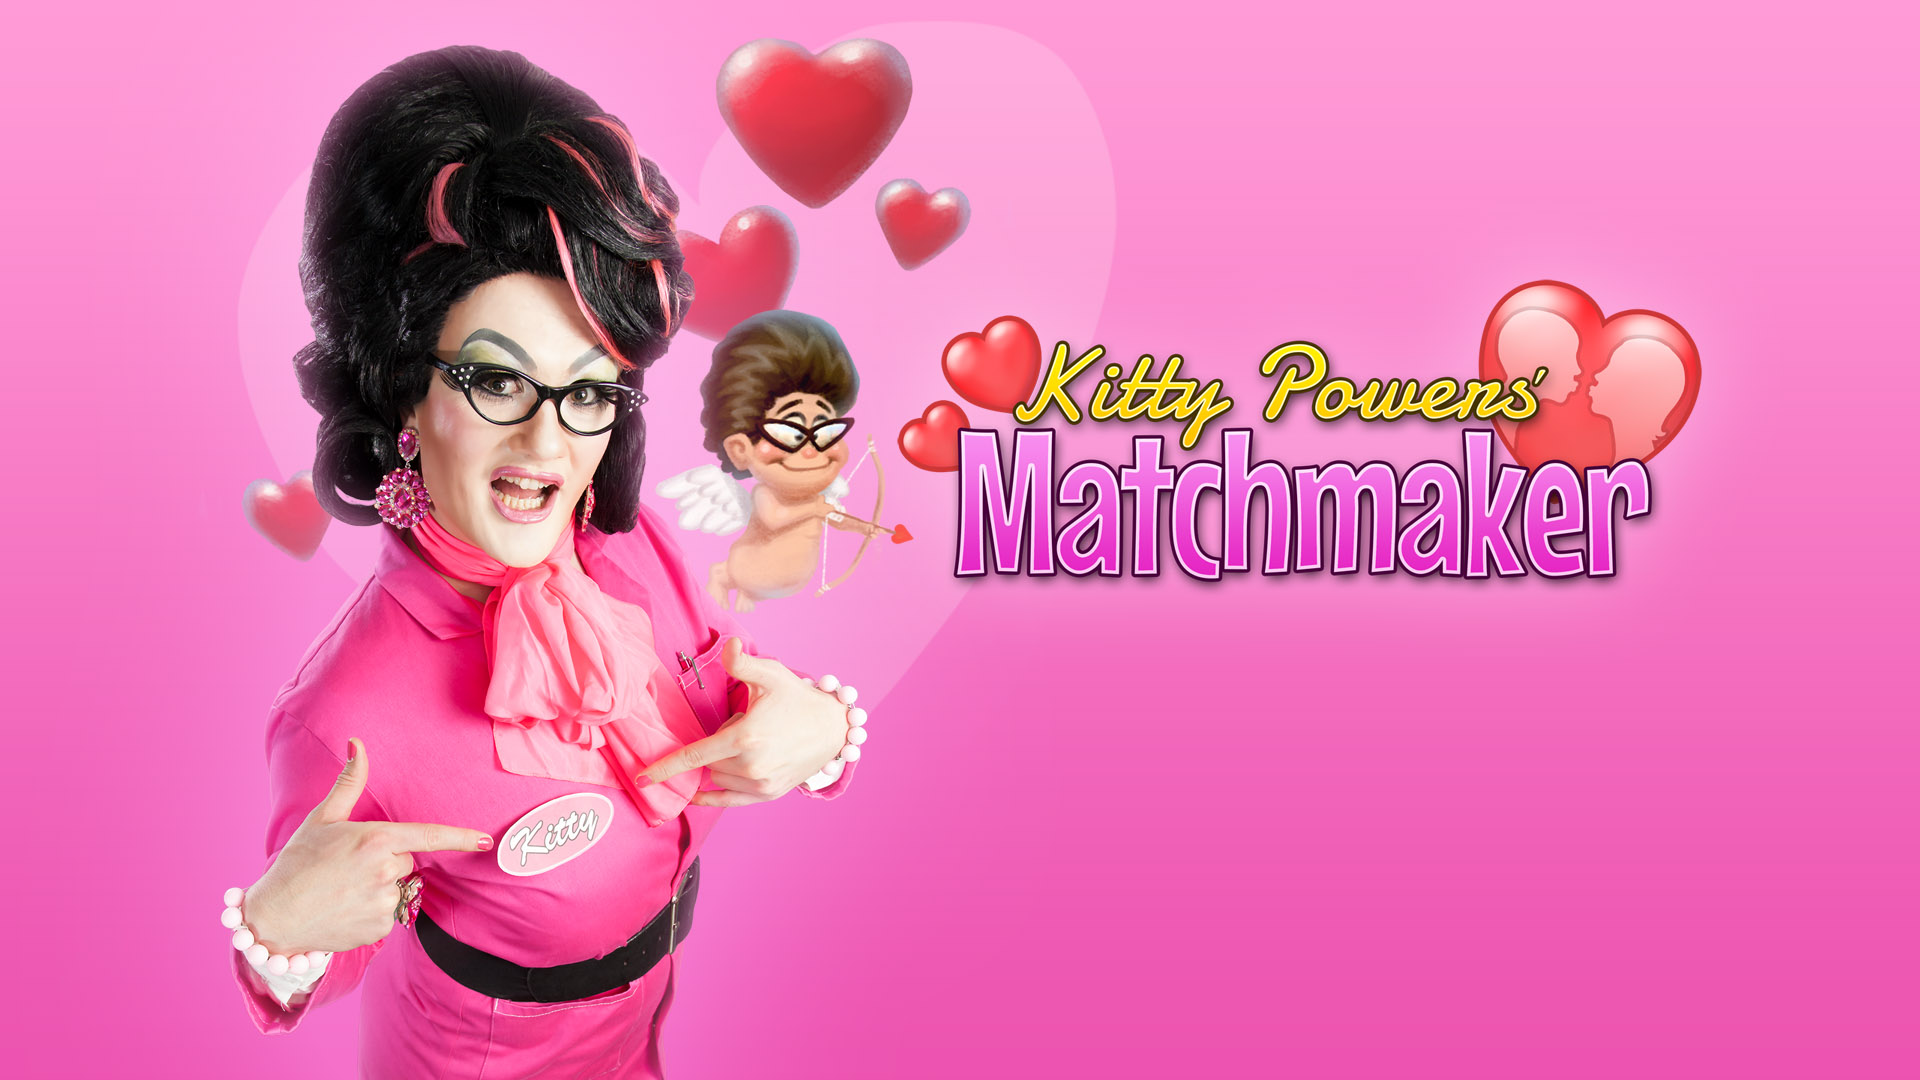 Images of Kitty Powers' Matchmaker | 1920x1080